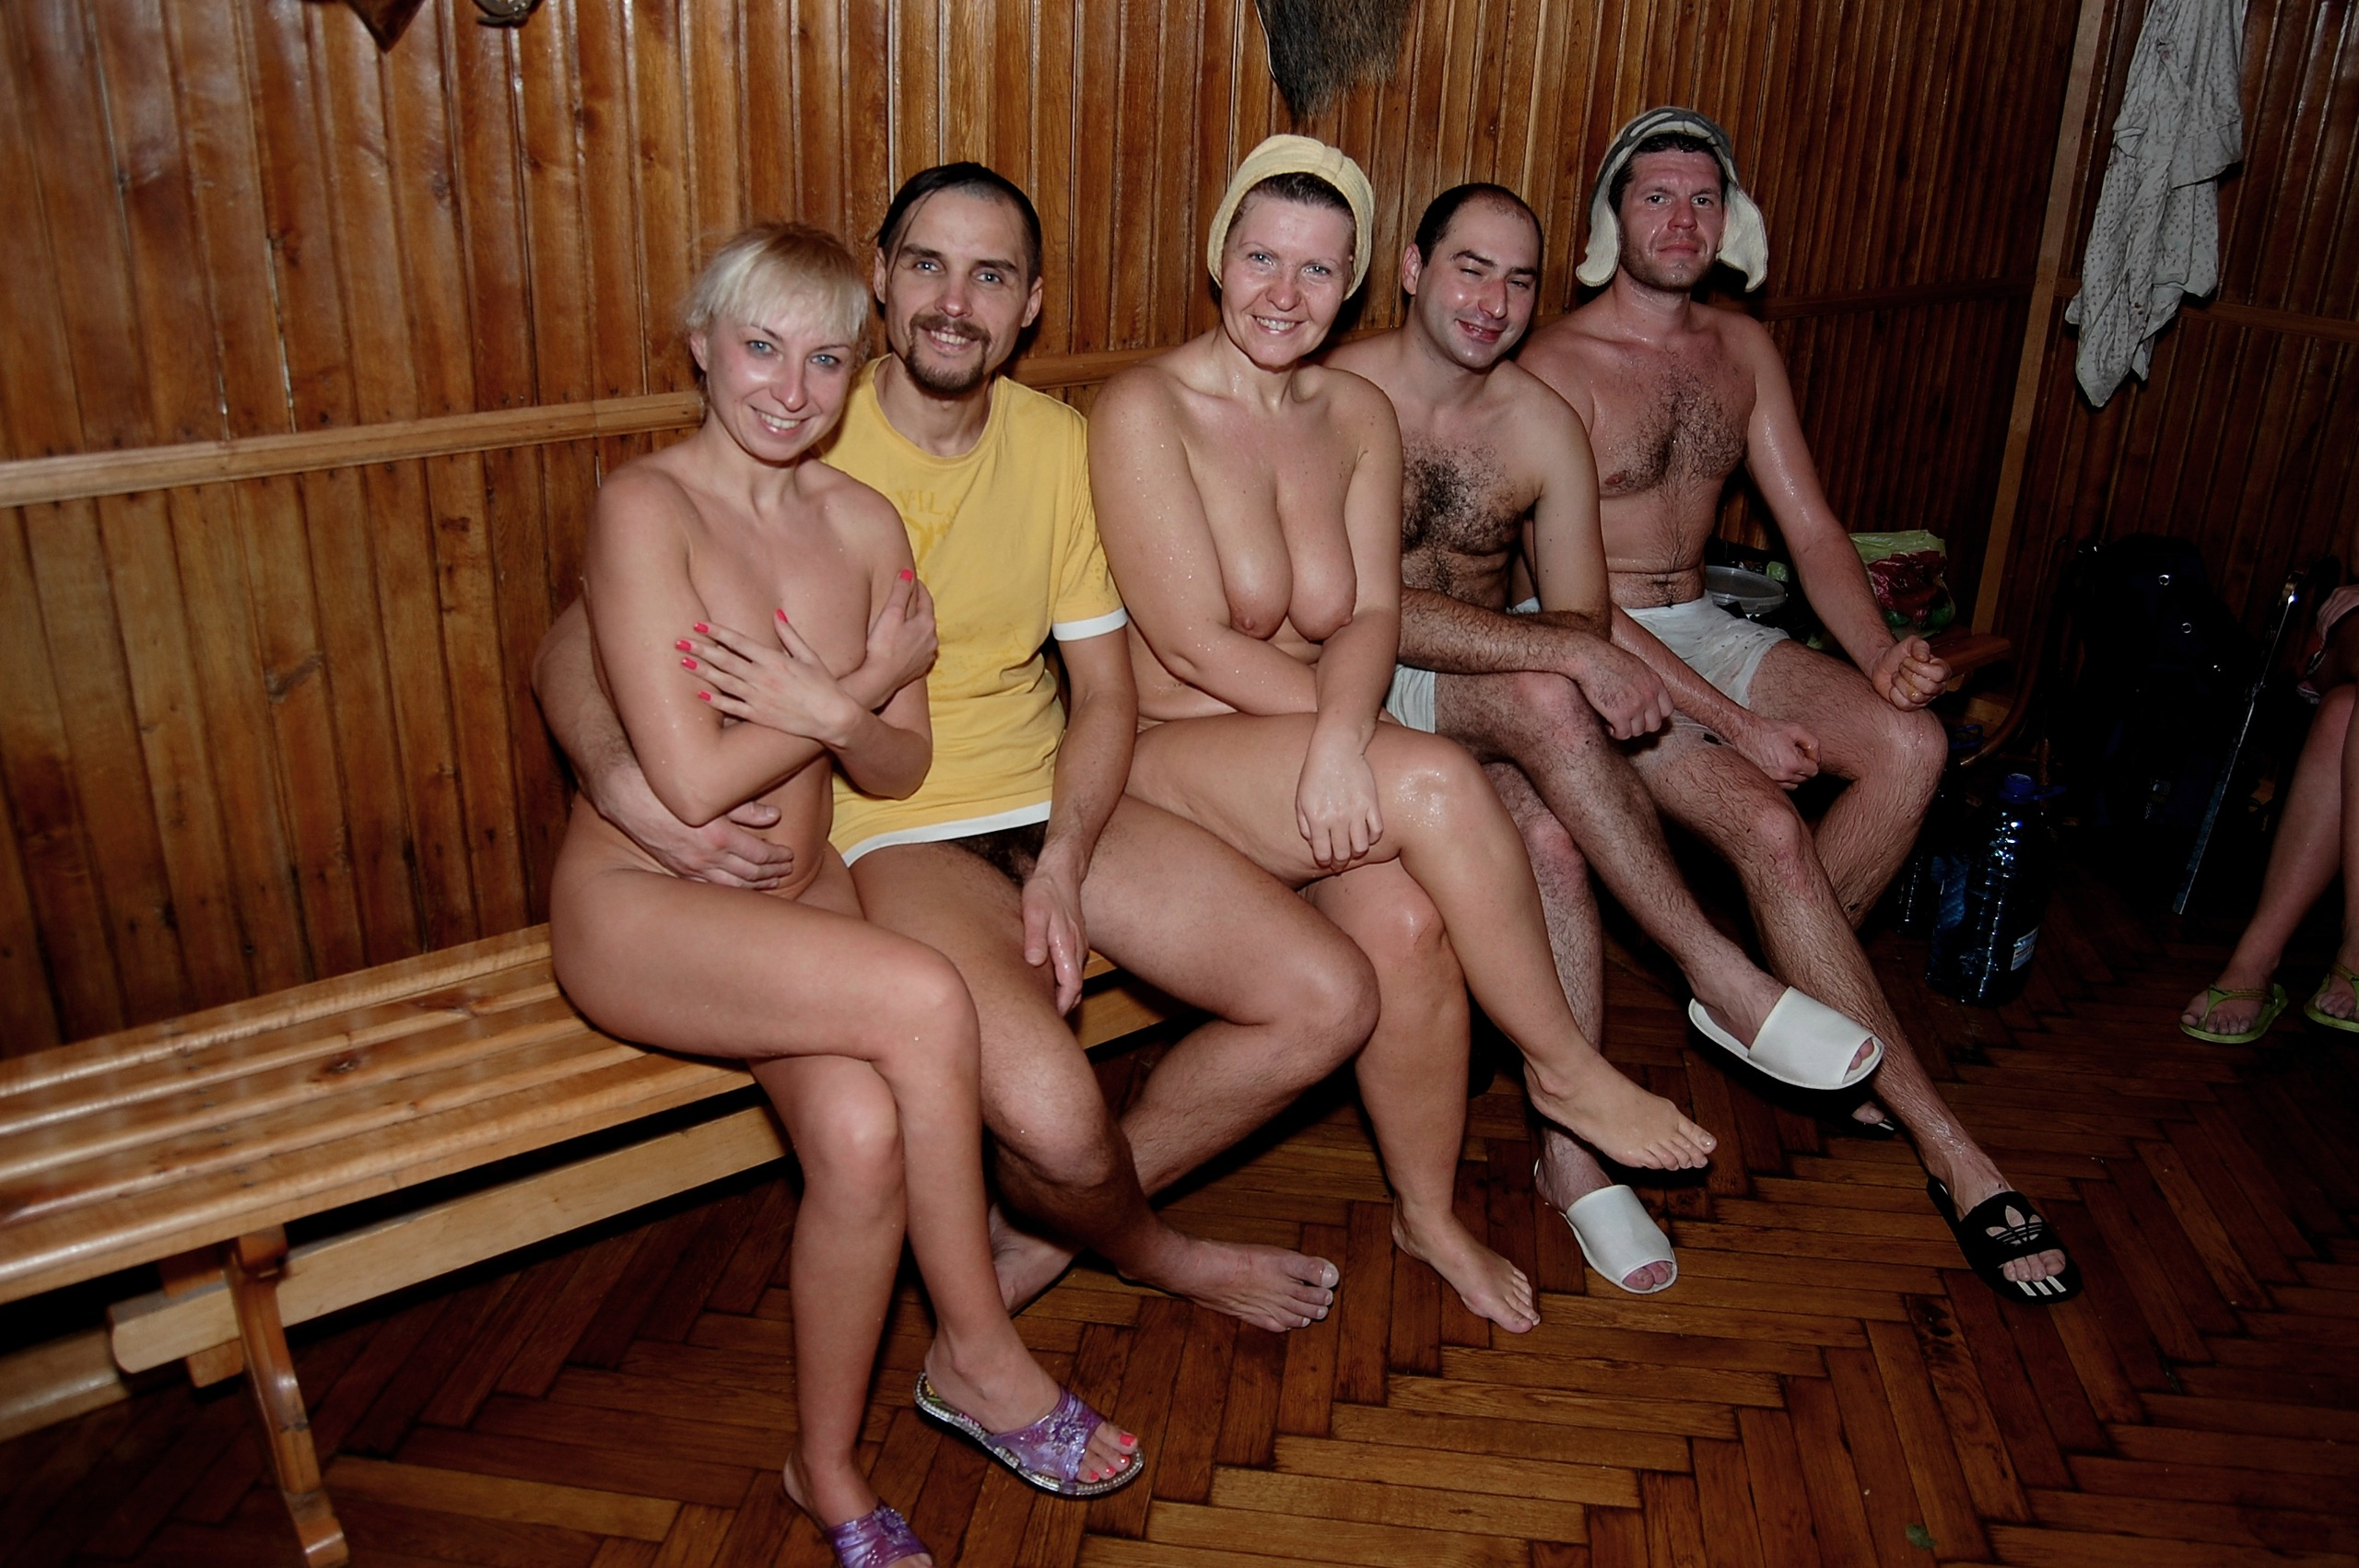 Getting naked in germany's bathhouses